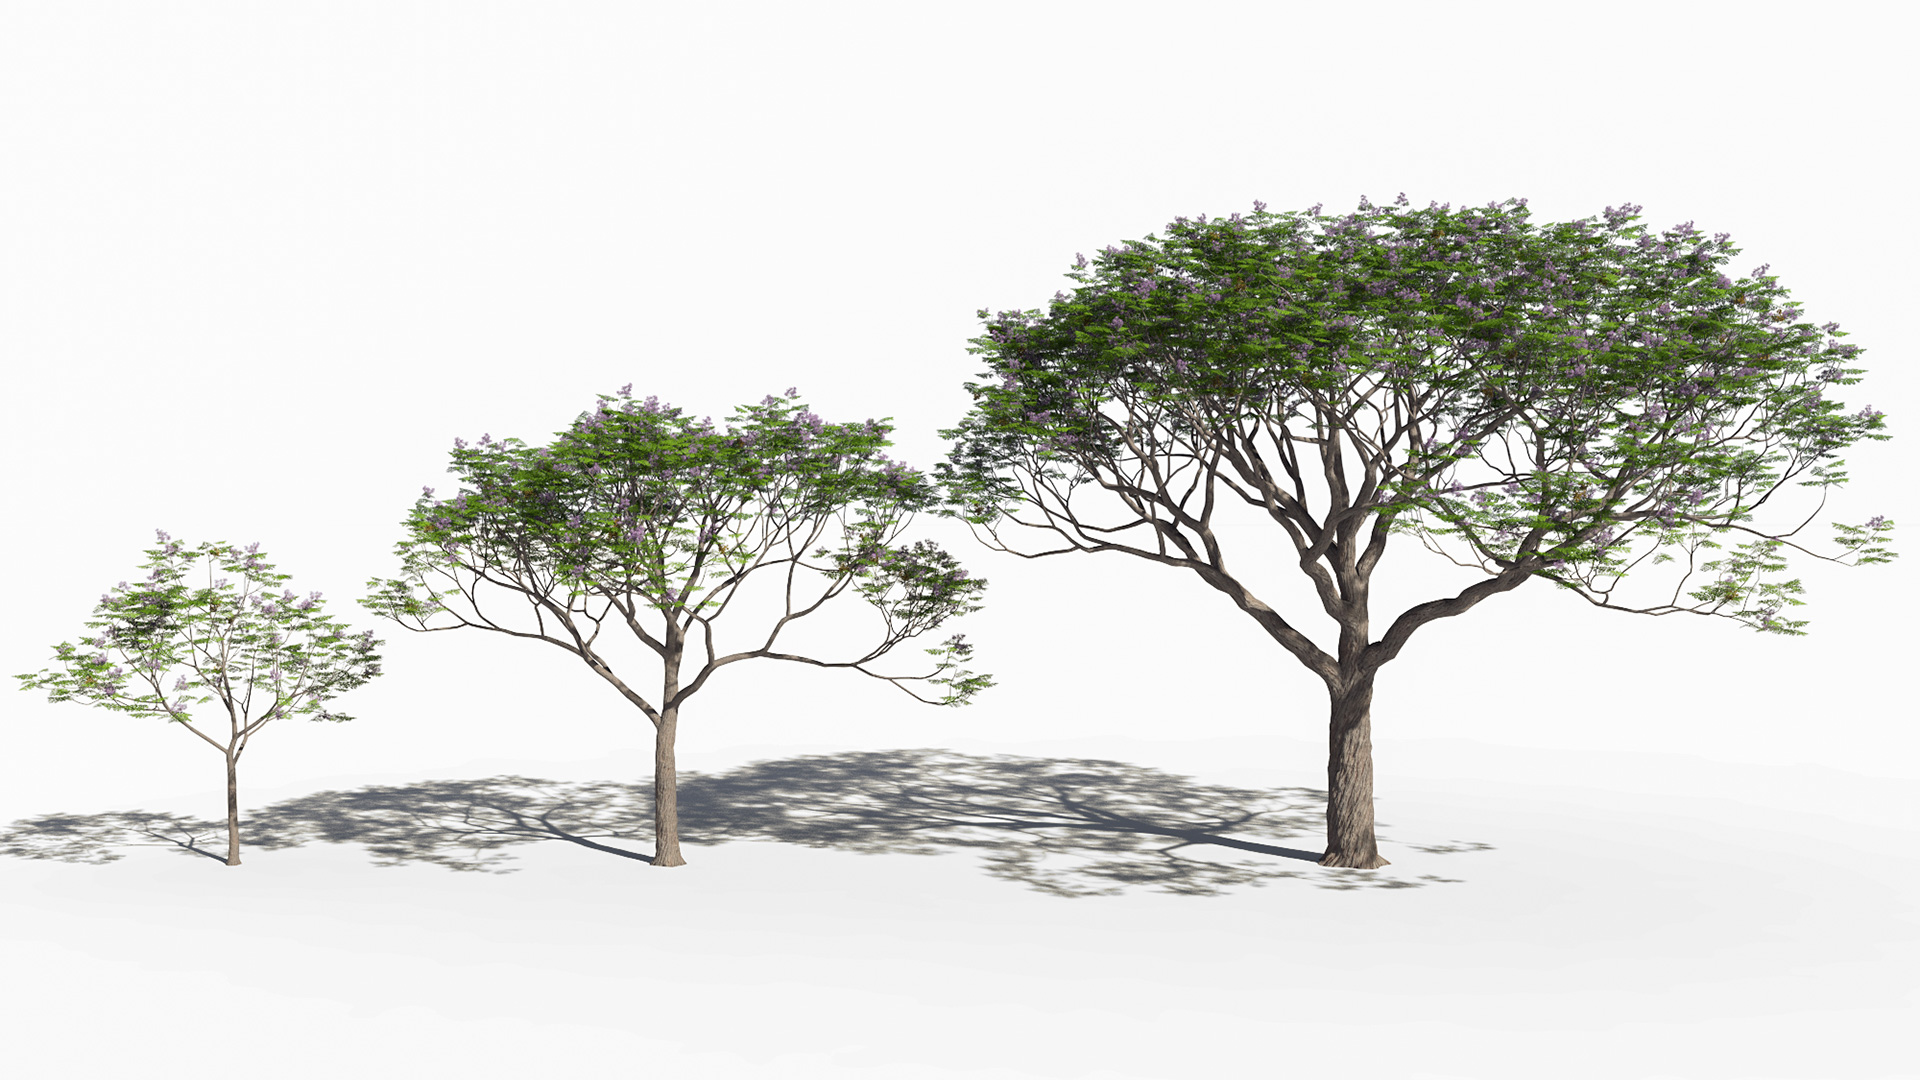 3D model of the Chinaberry tree Melia azedarach maturity variations